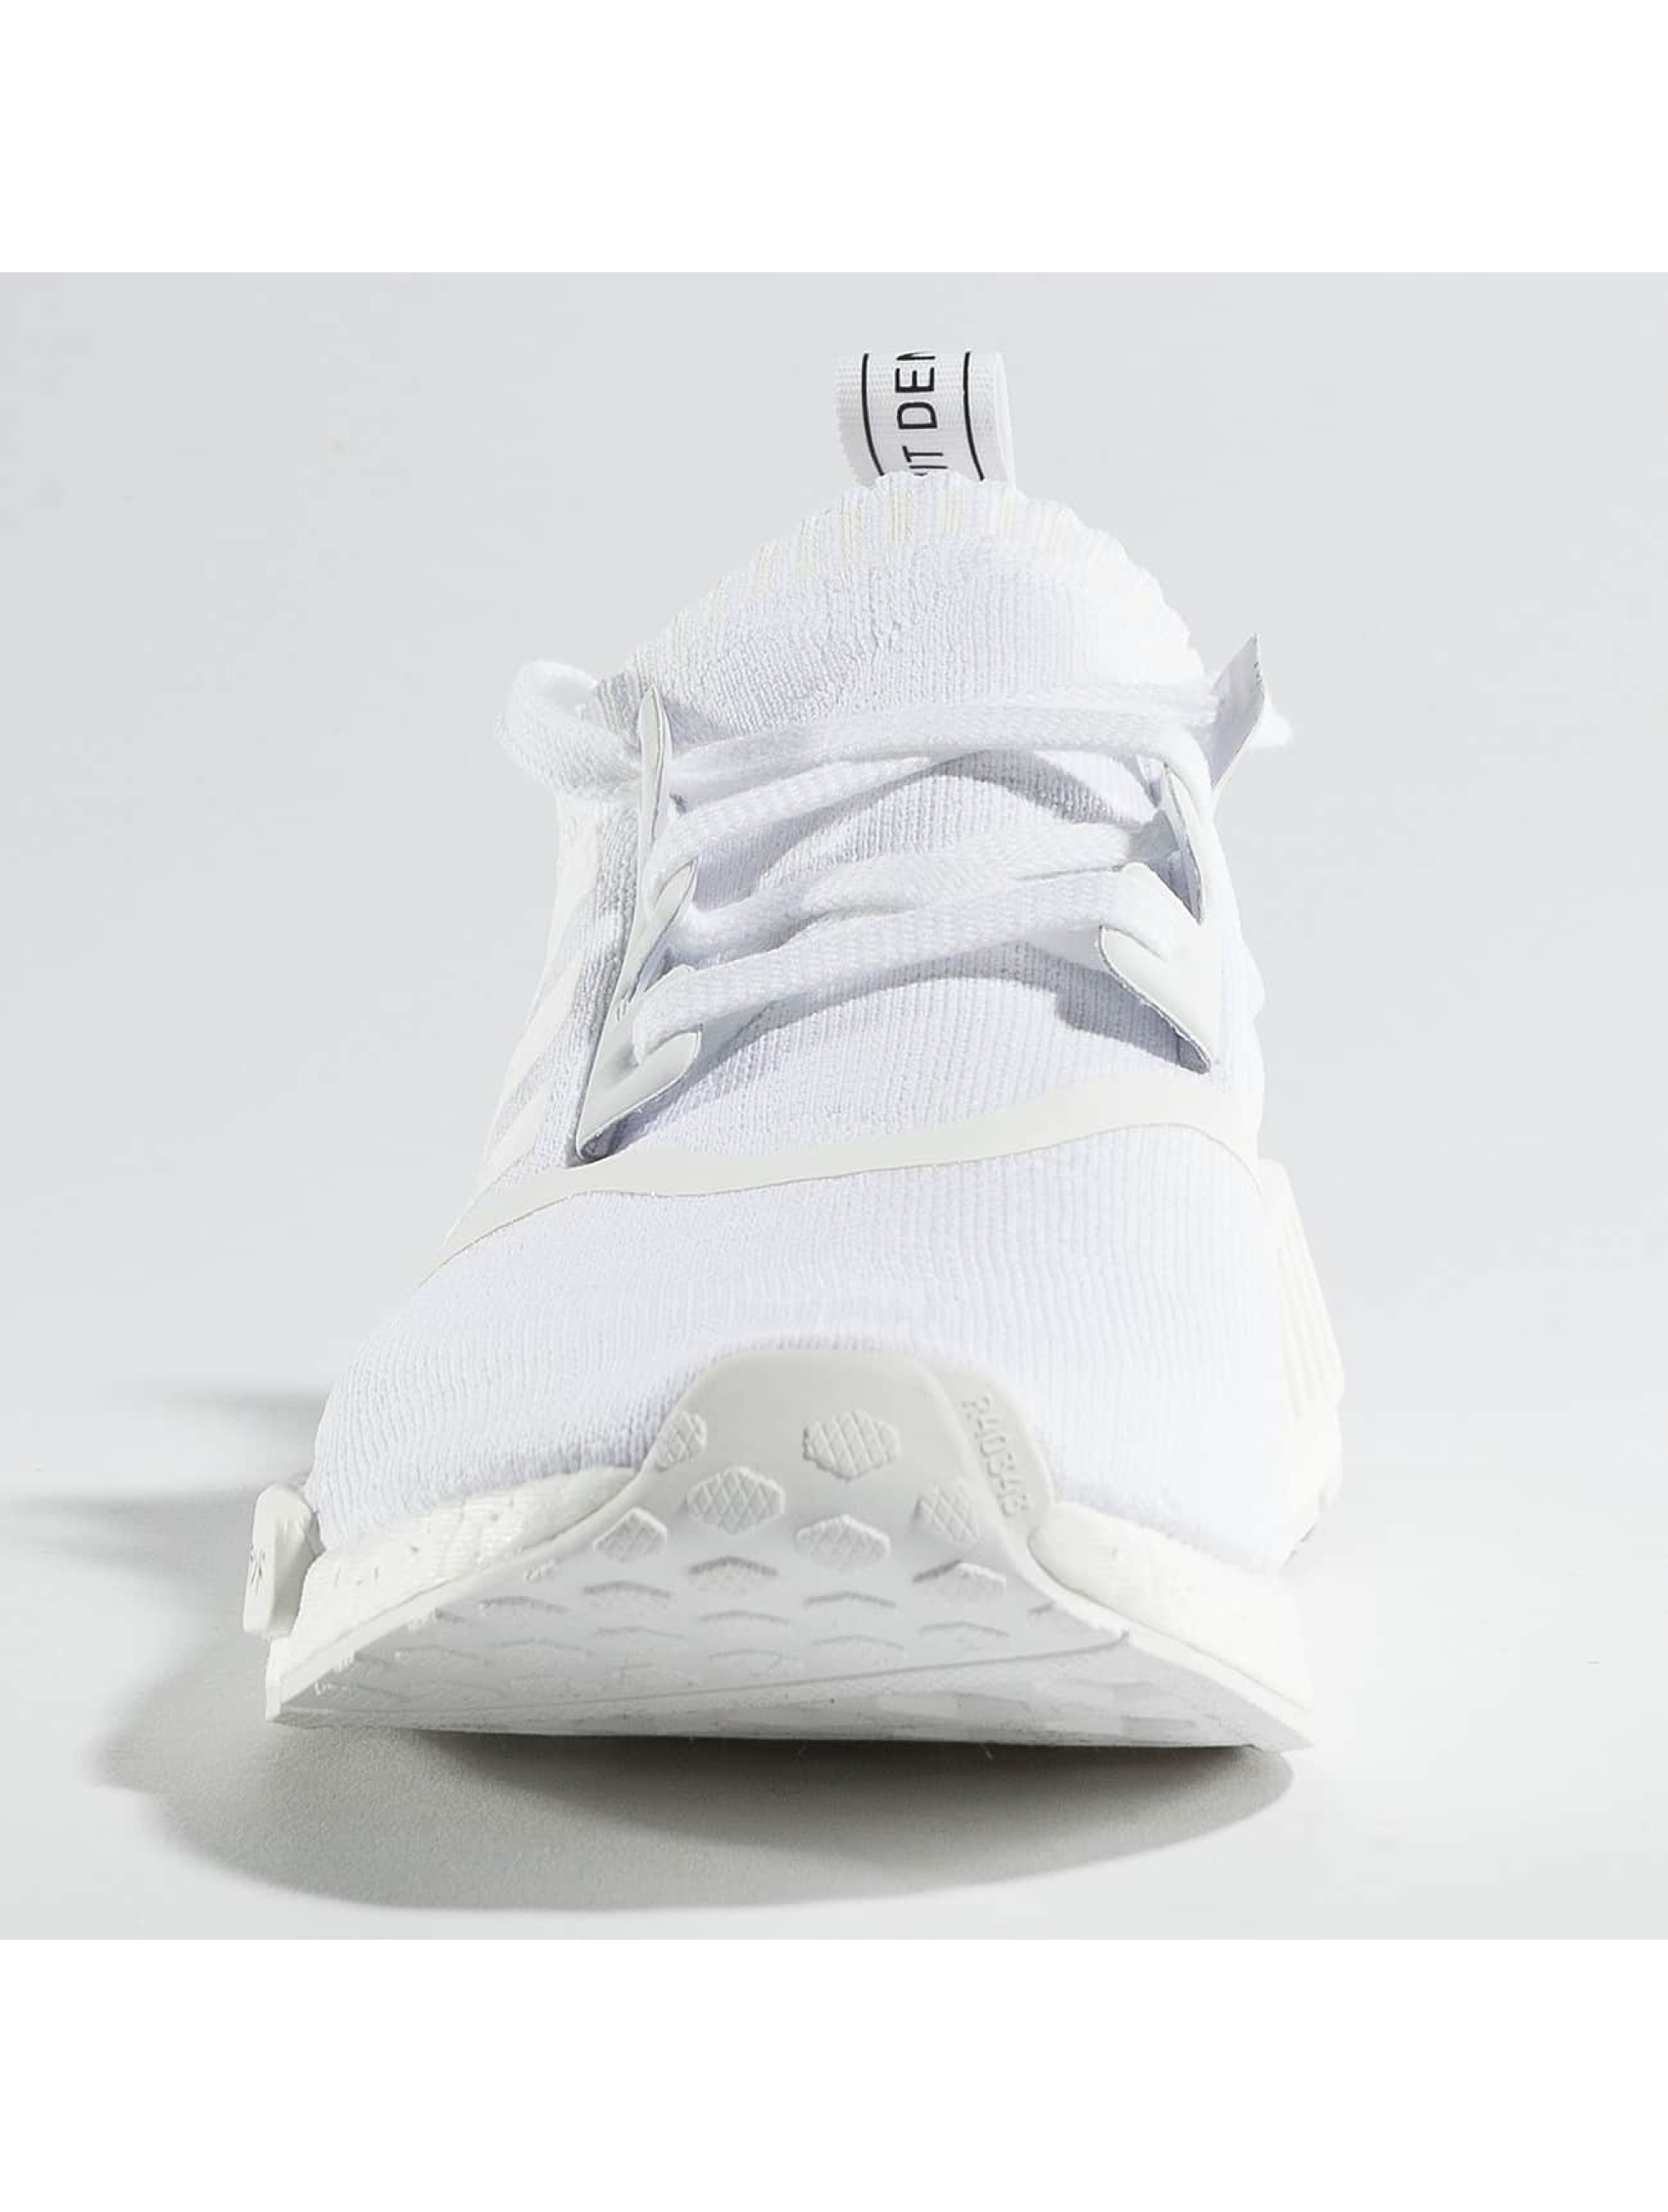 adidas Sneakers NMD_R1 PK white